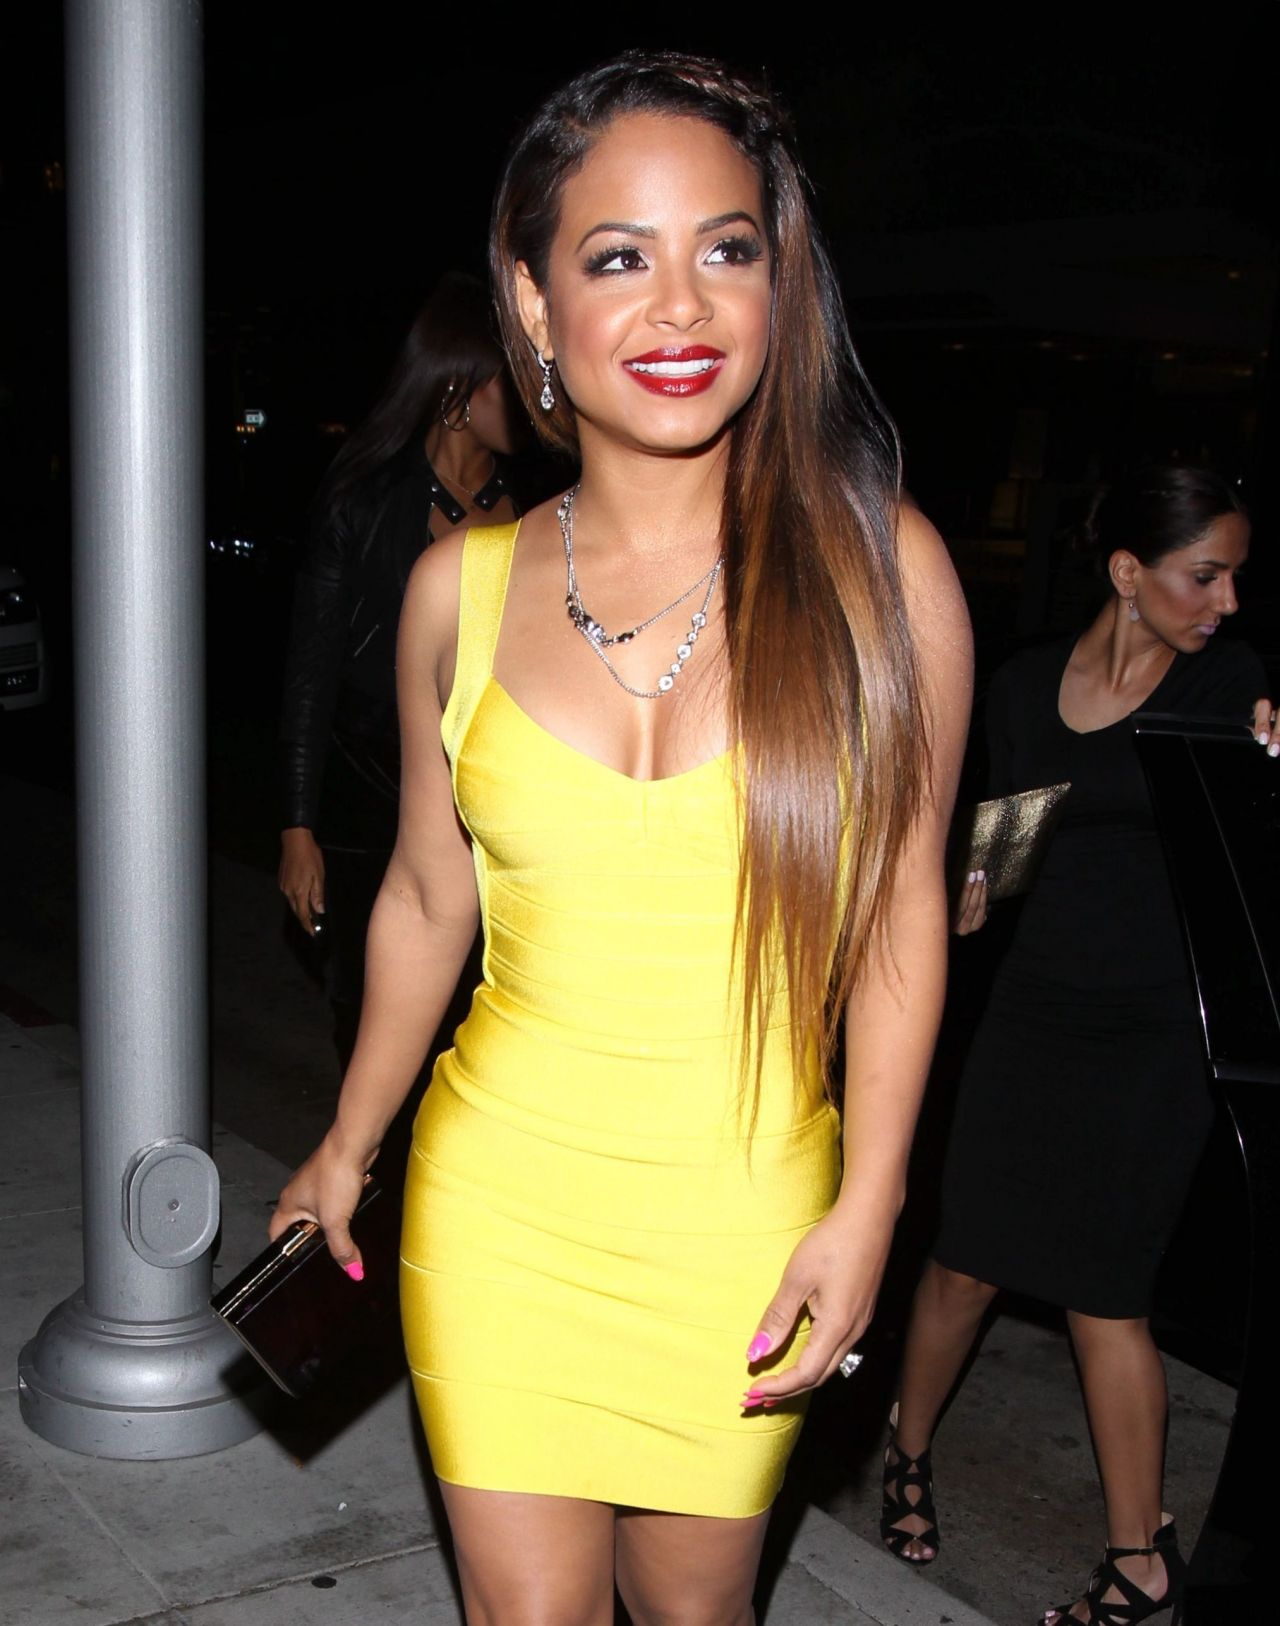 Christina Milian Nigh Out Style - post-Grammy Dinner at Mr.Chow in Beverly Hills